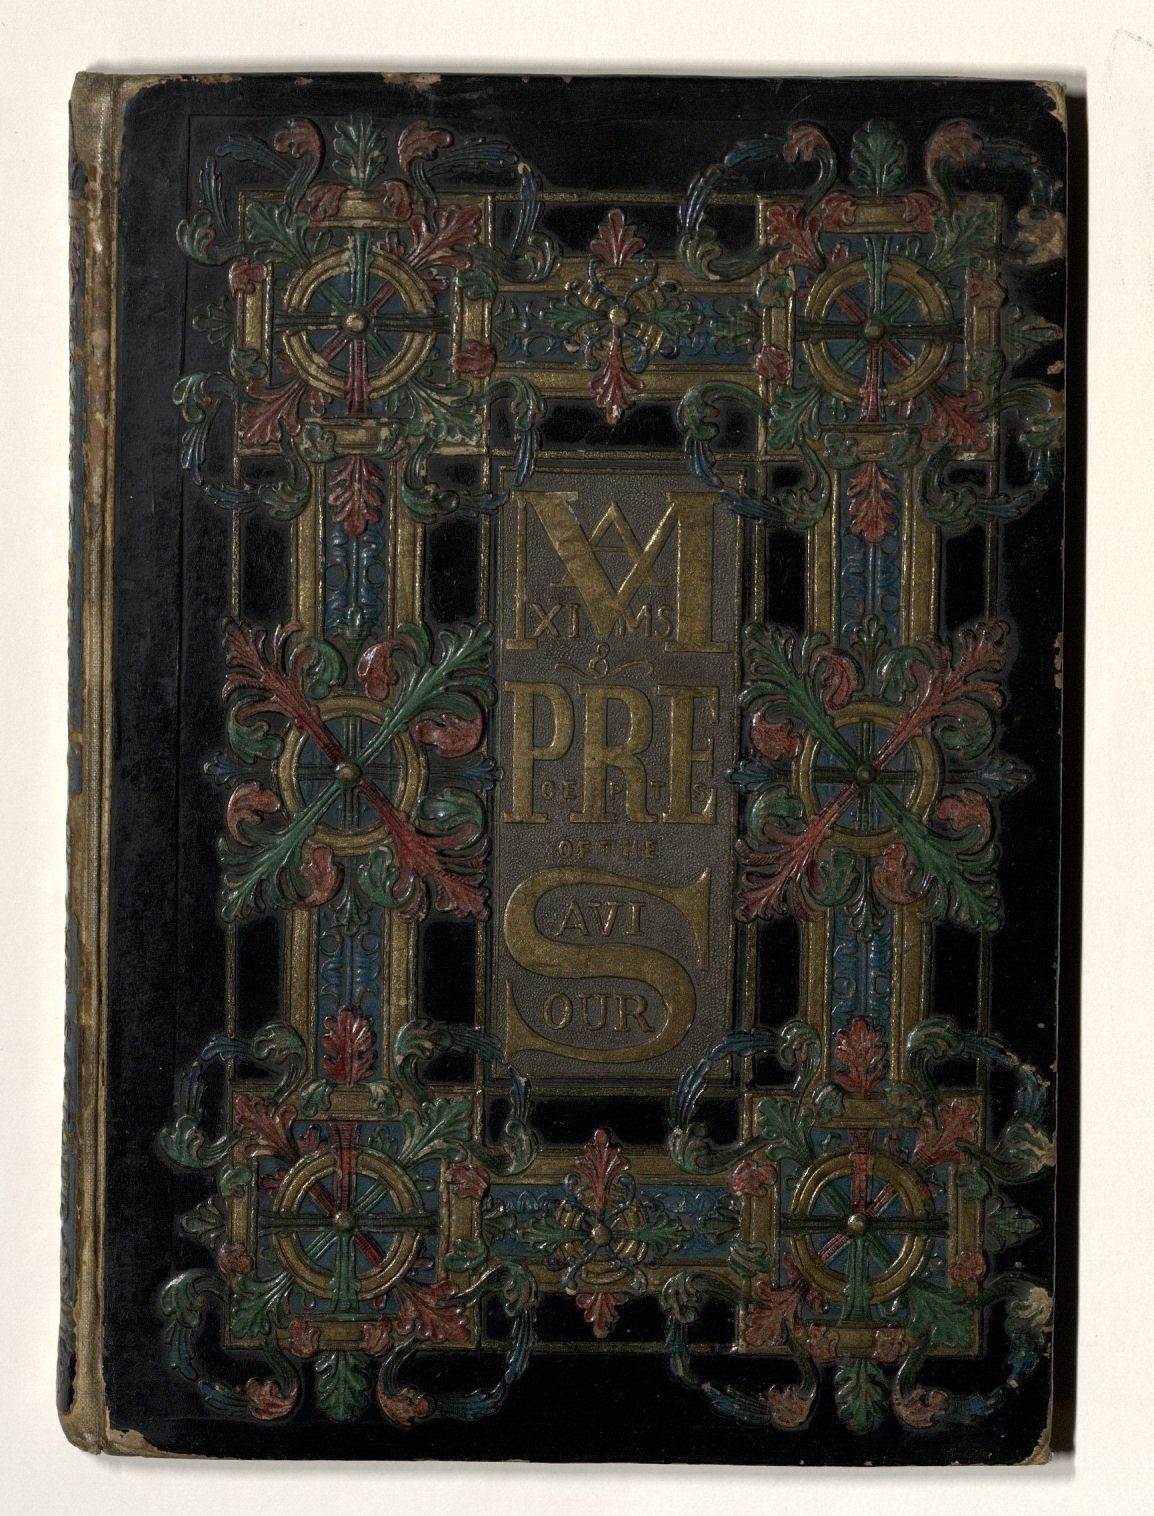 Maxims and precepts of the saviour., 1848. Typ 805.48.5626